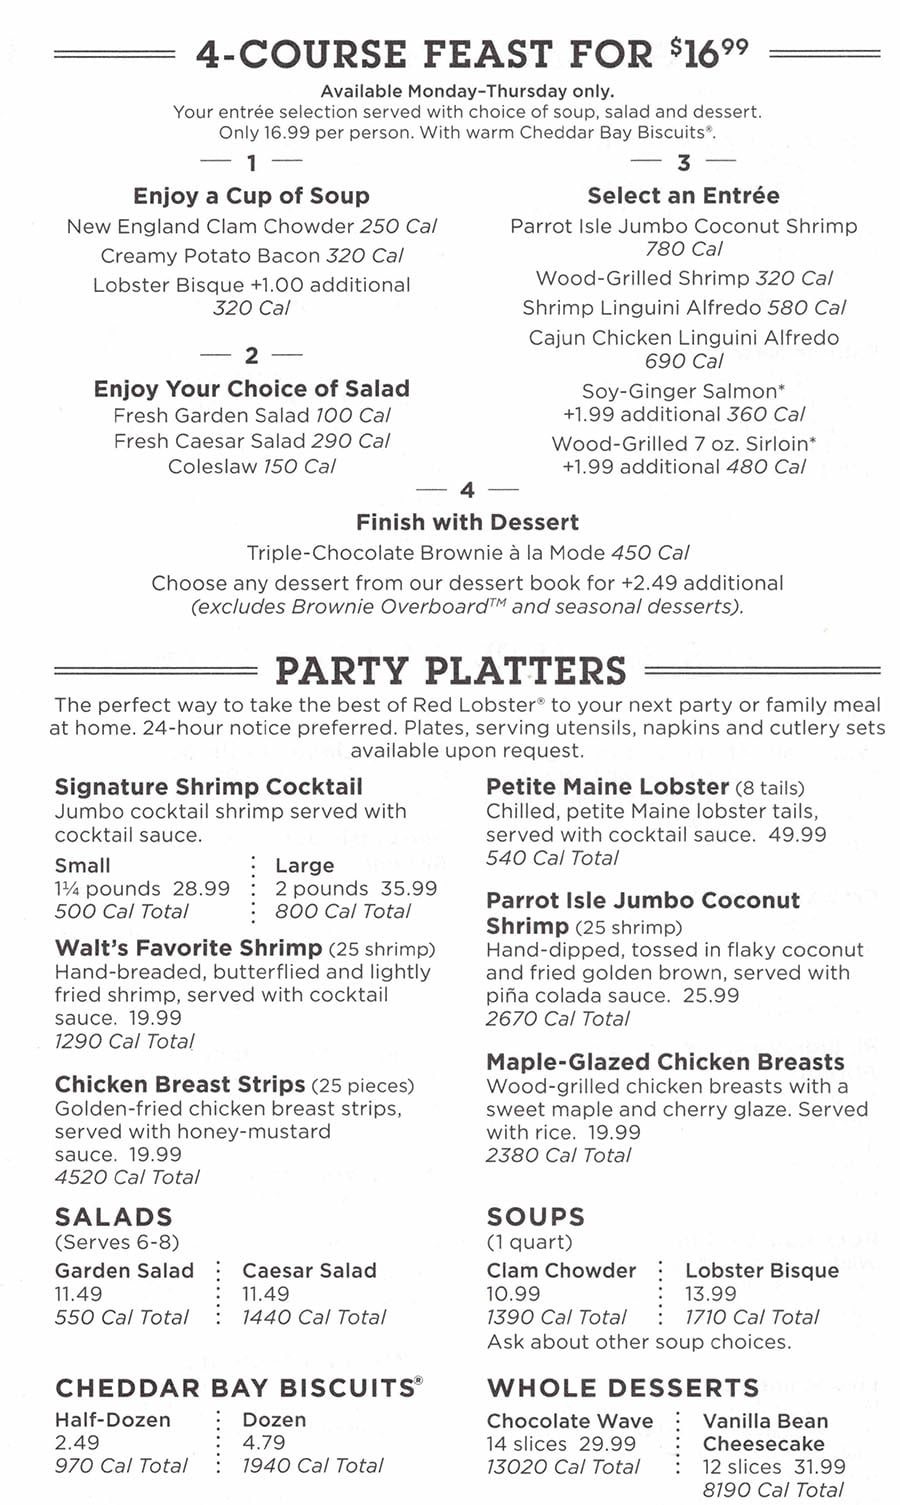 Red Lobster menu - four course feast, party platters